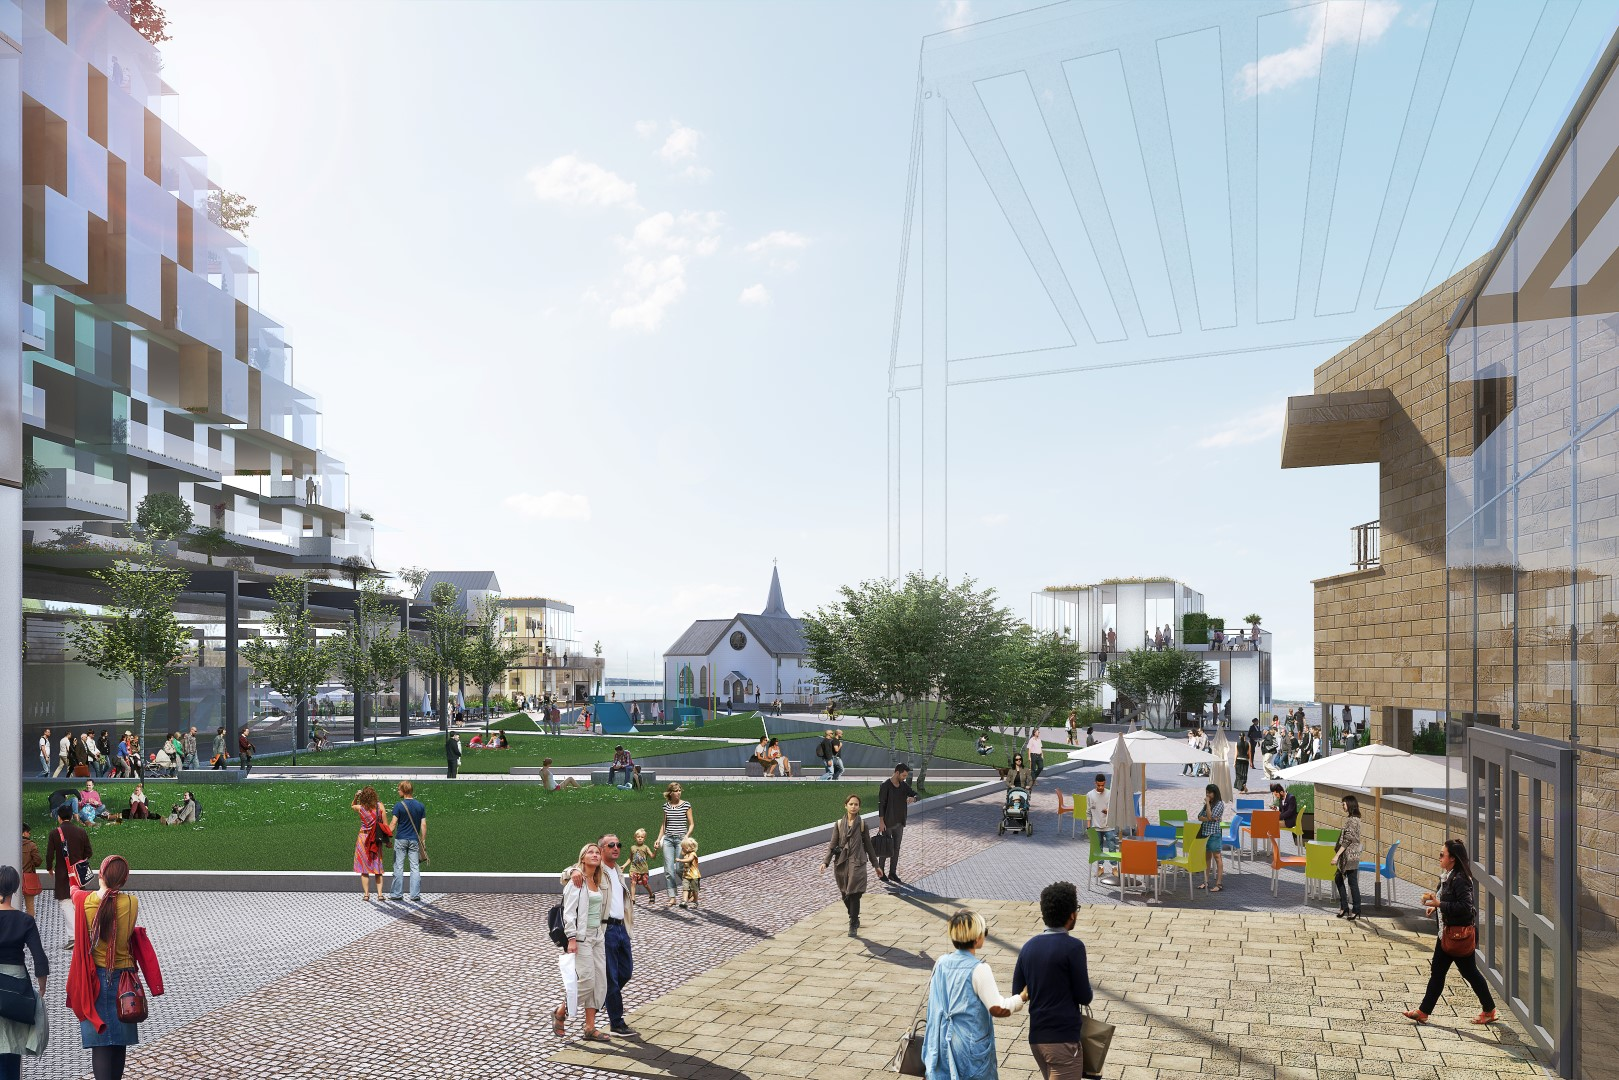 CGI (prepared by Chetwoods Architects) of the landscape design concept